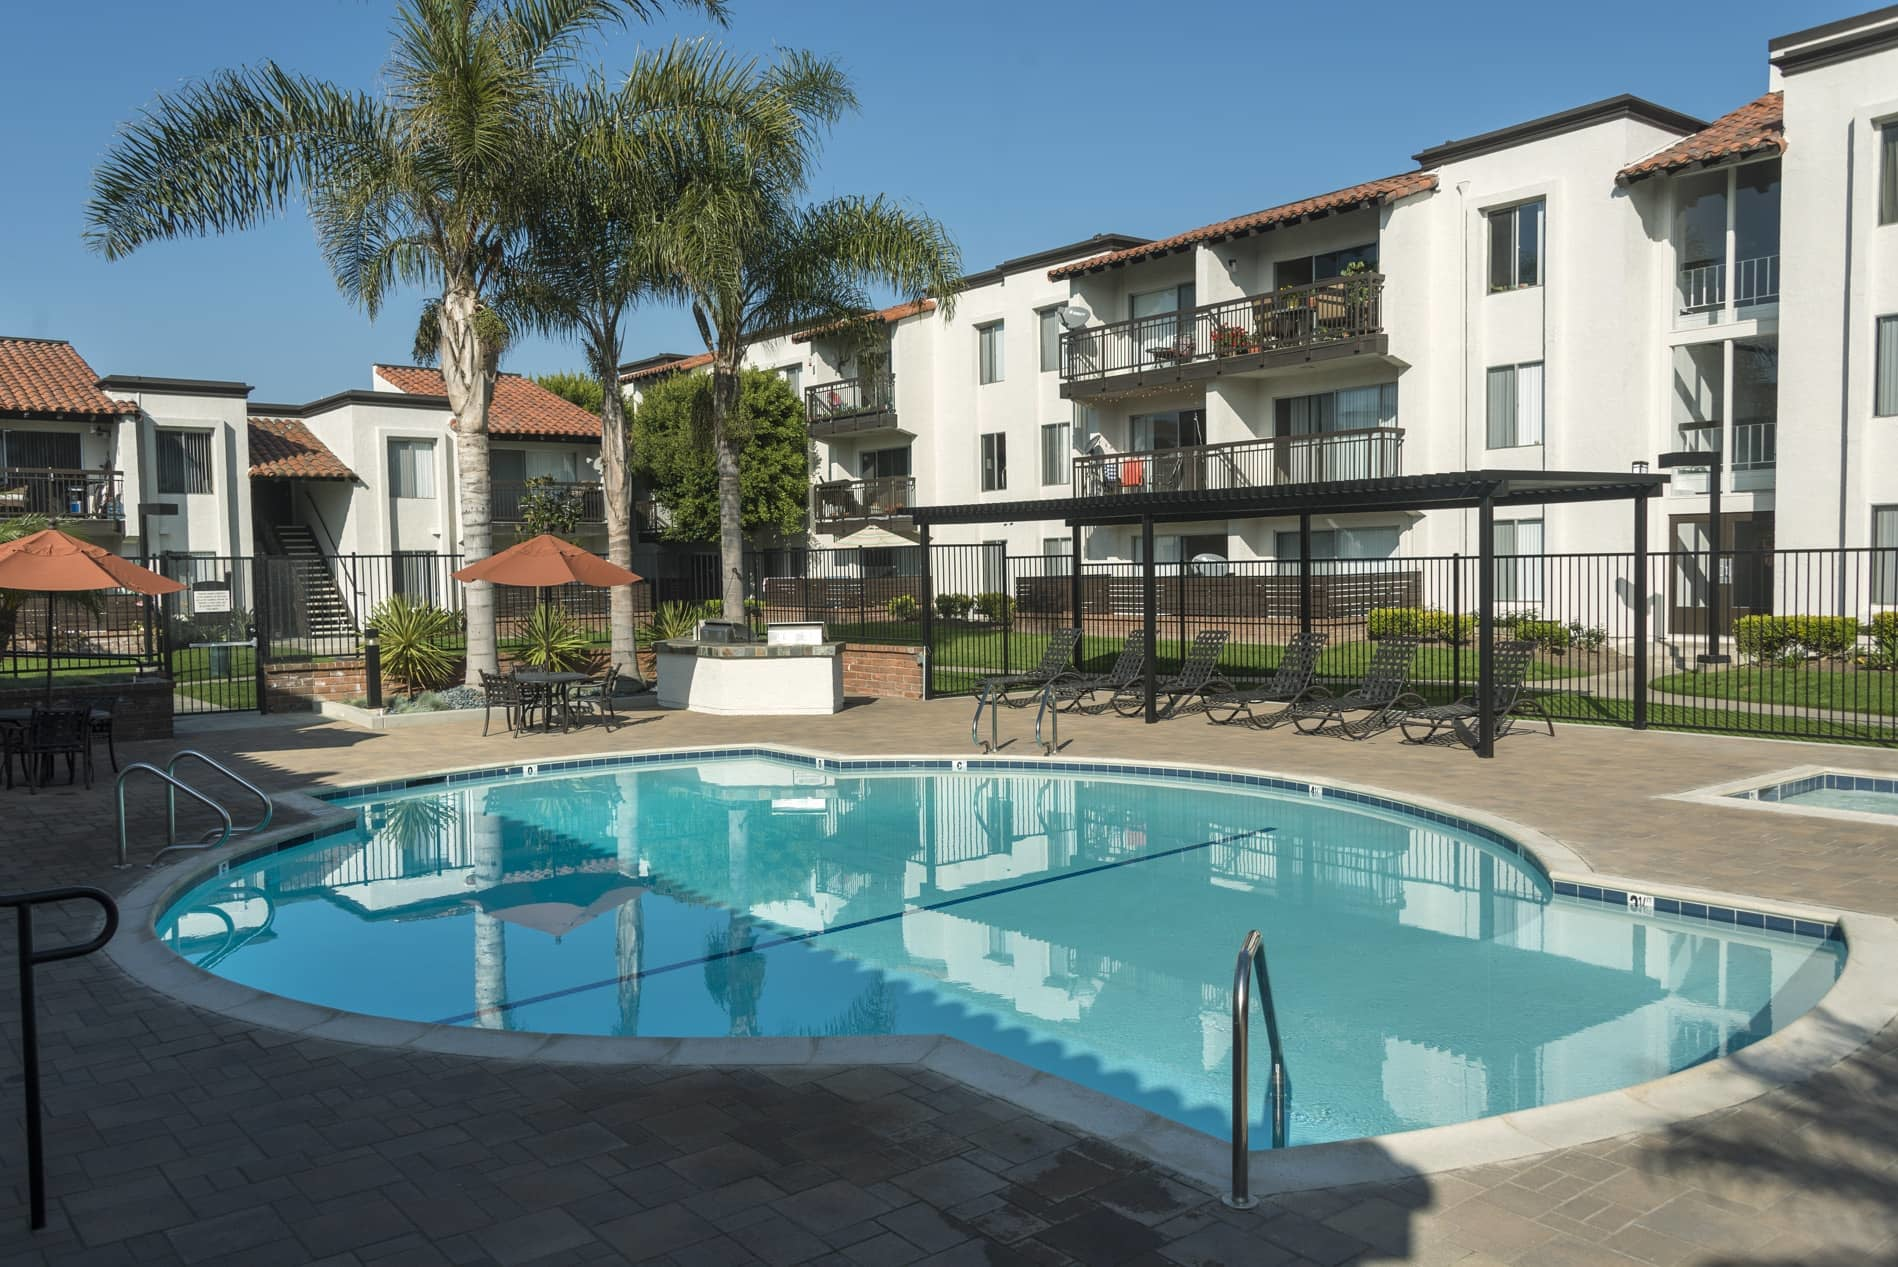 20 Best Apartments In Huntington Beach CA with pictures